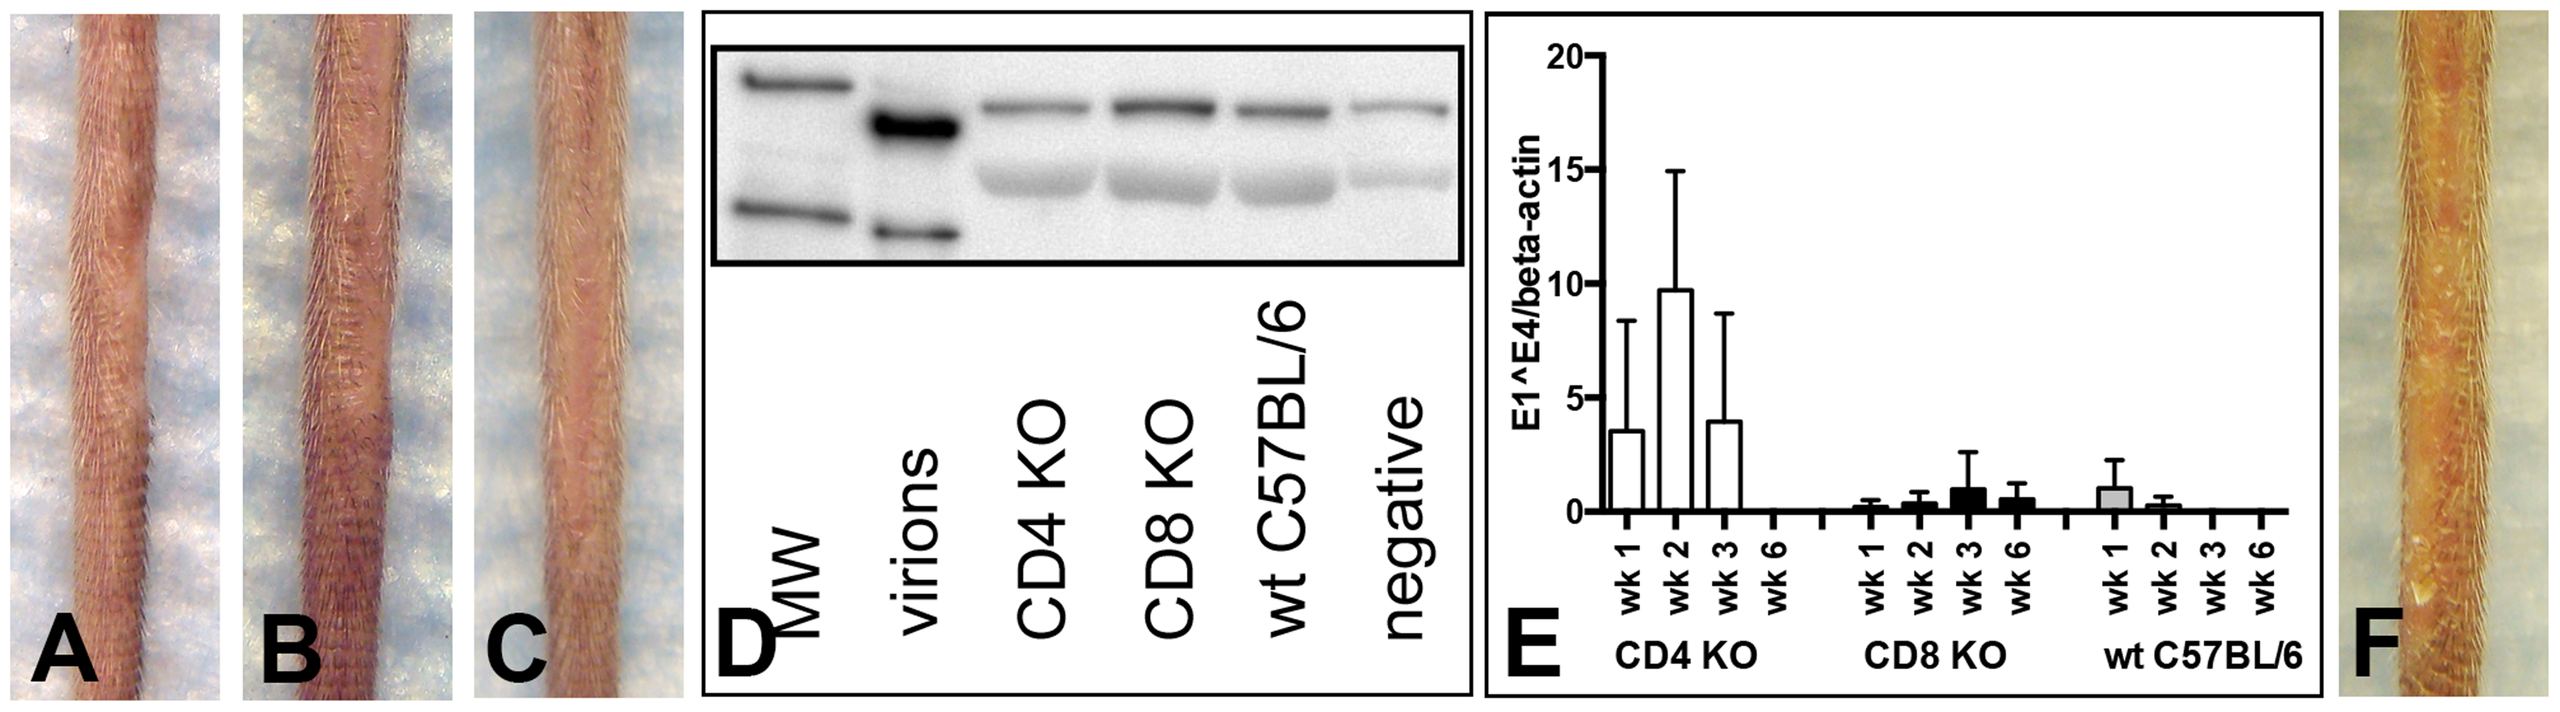 CD4- and CD8-deficient C57BL/6 mice differ in MusPV1 gene transcription early after infecton.